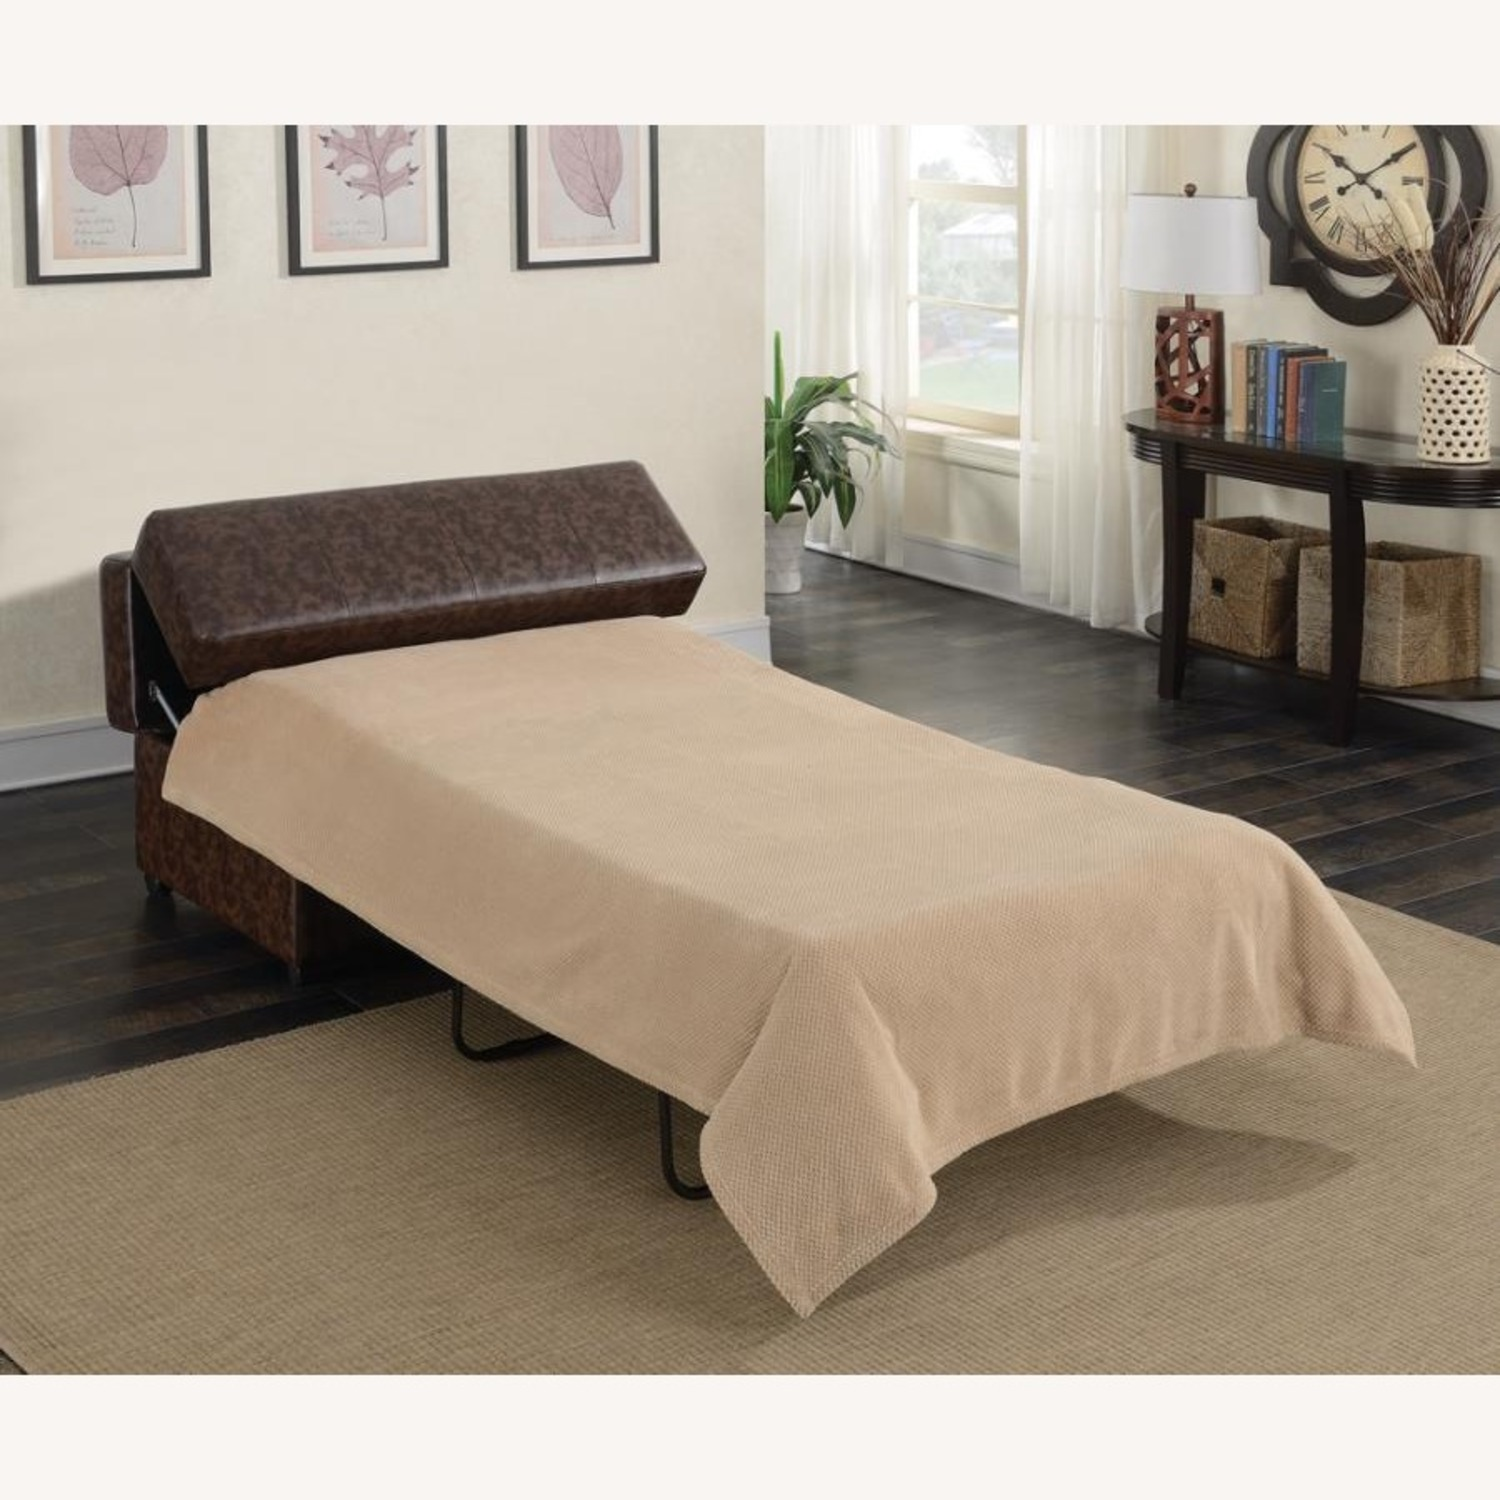 Multi-Functional Ottoman In Dark Brown Leatherette - image-5